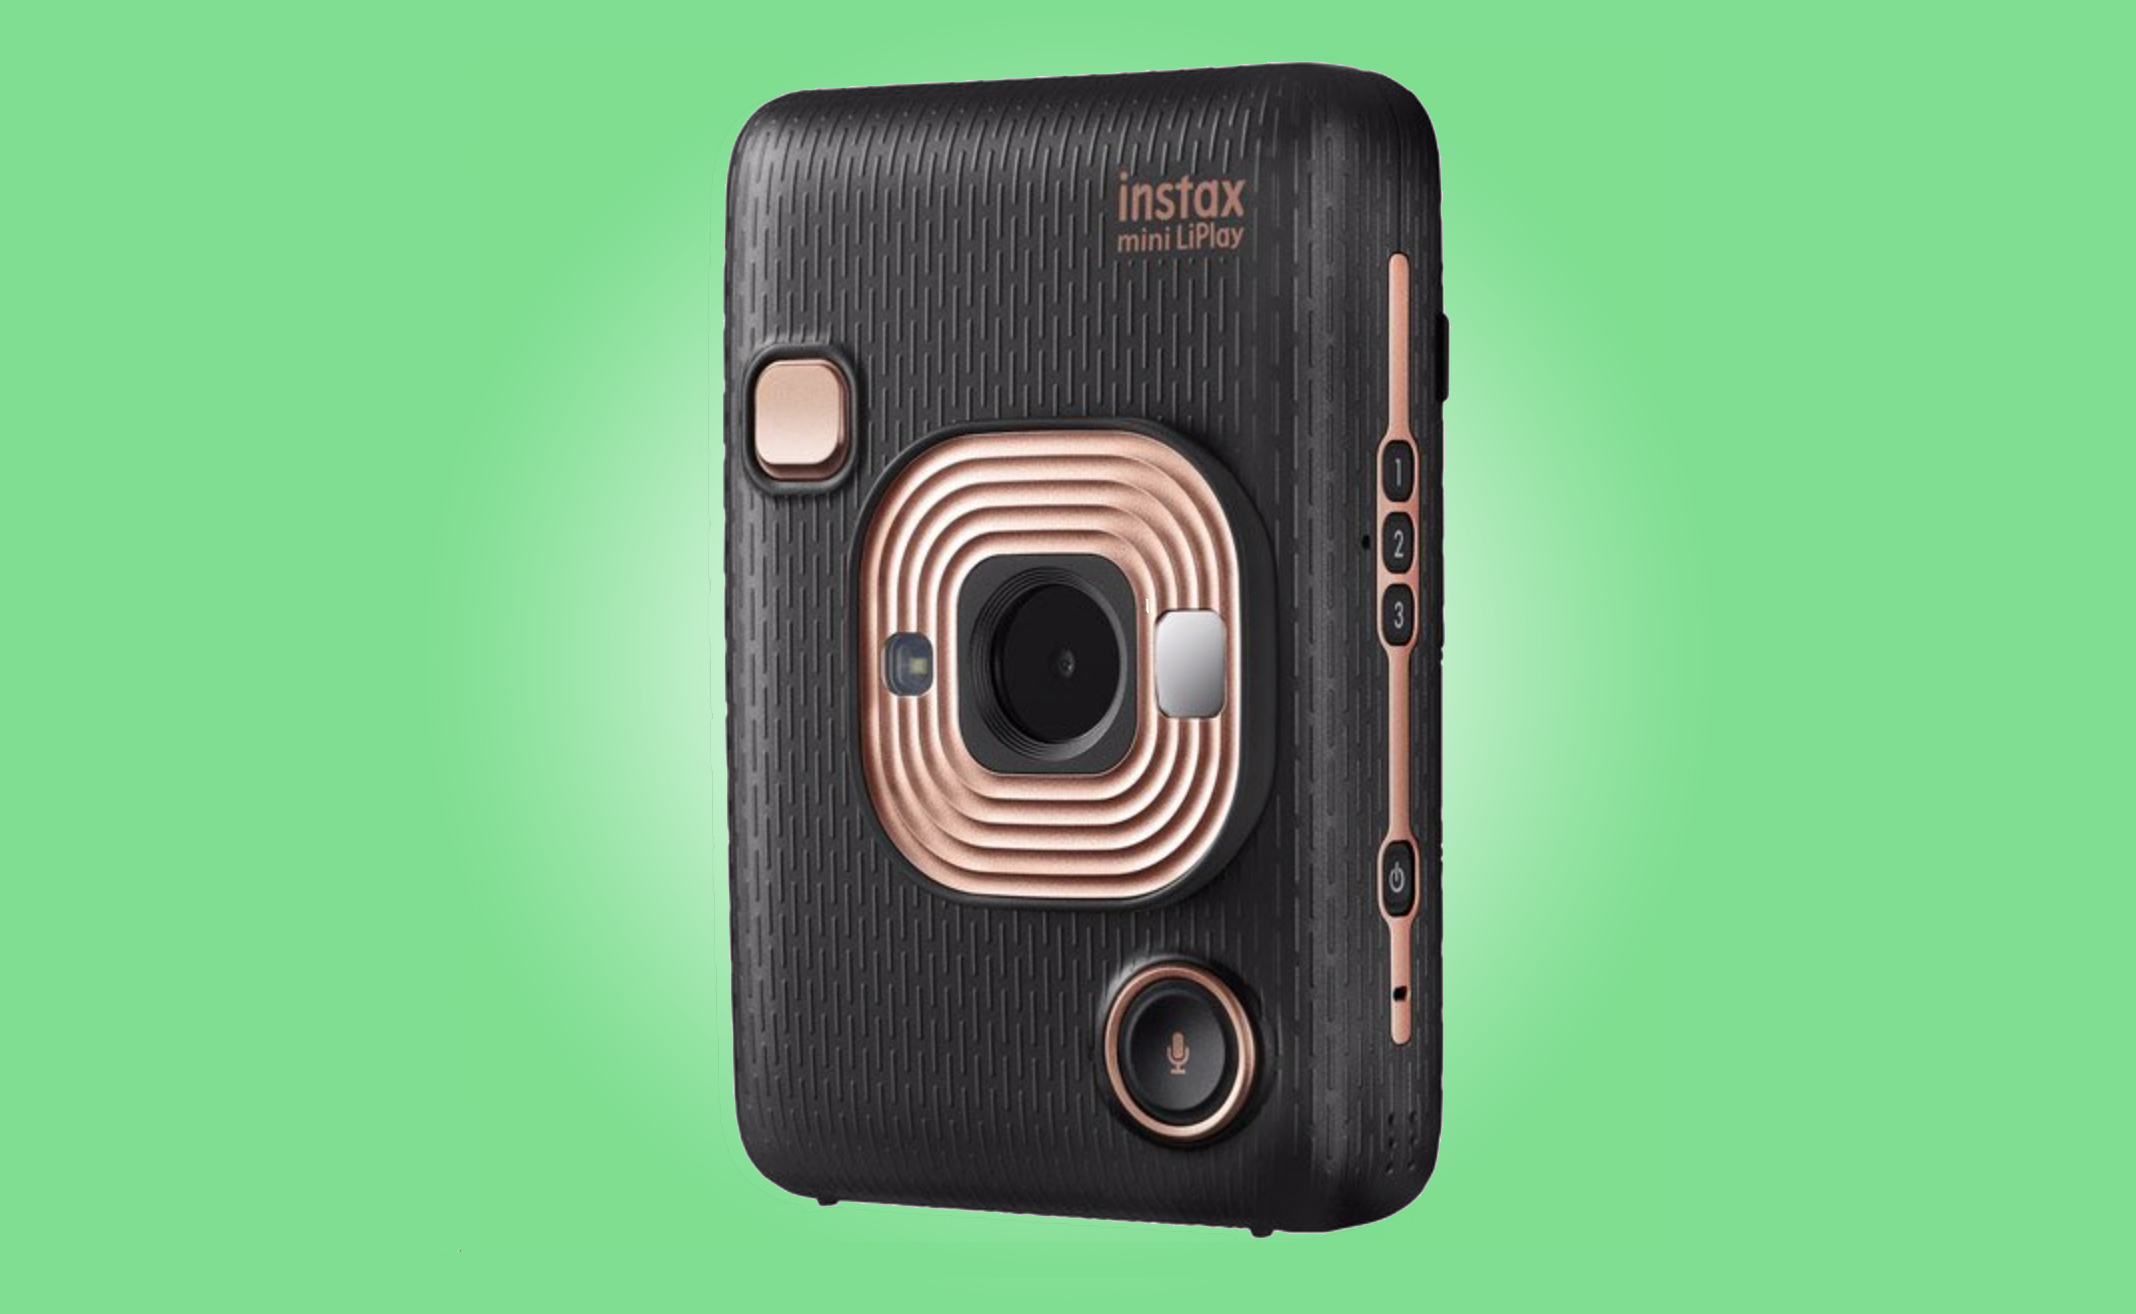 ▷ Fujifilm Instax mini LiPlay confirmado 1